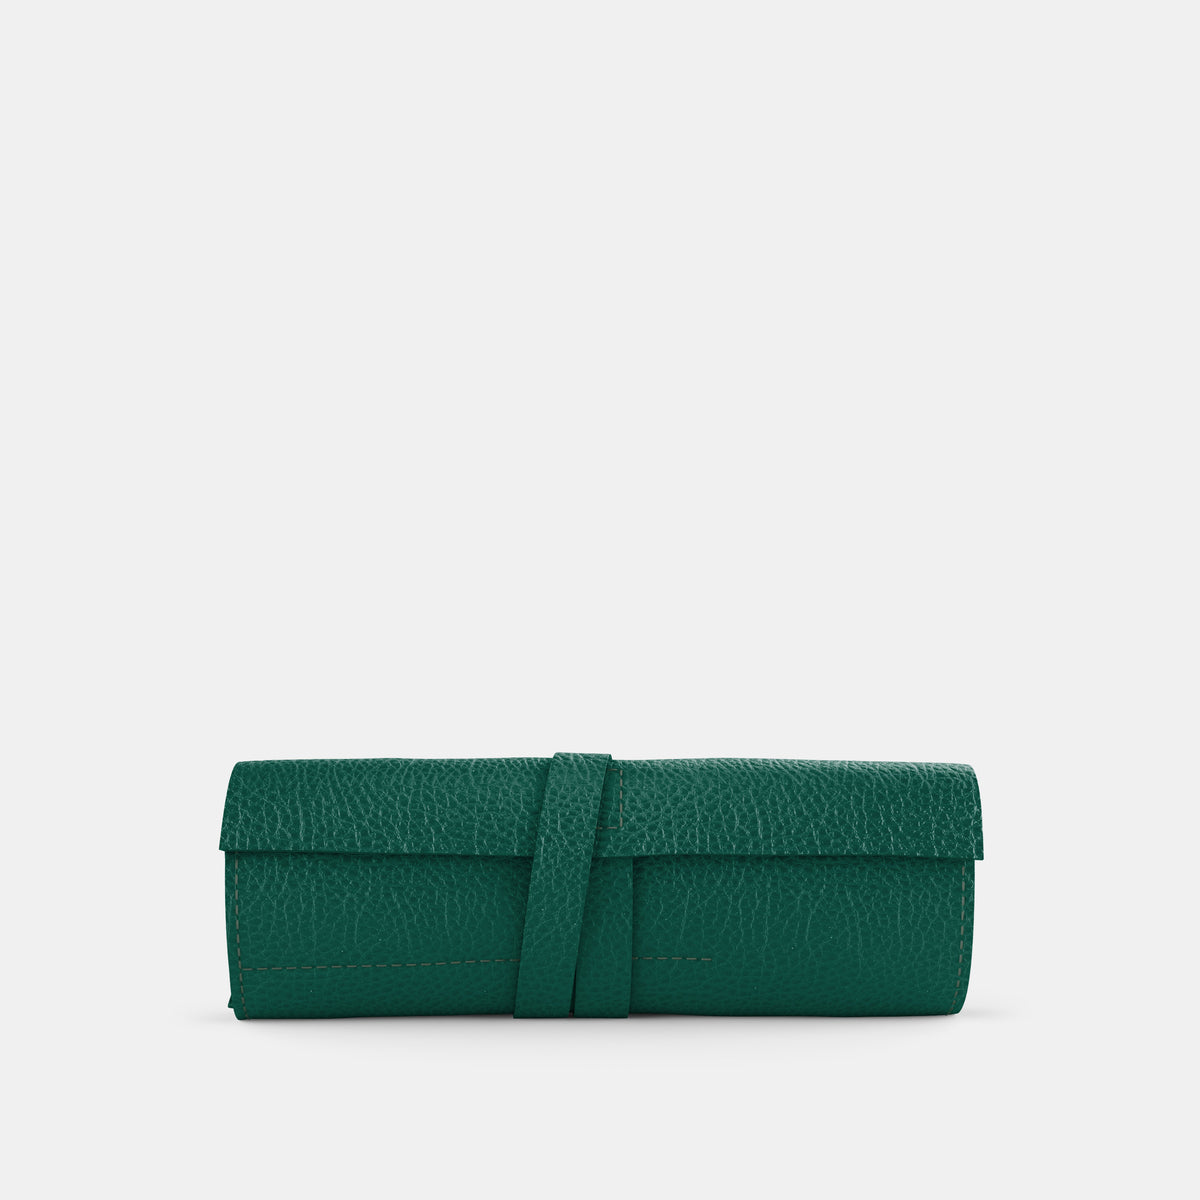 Leather Roll - Avocado and Orange - RYAN London